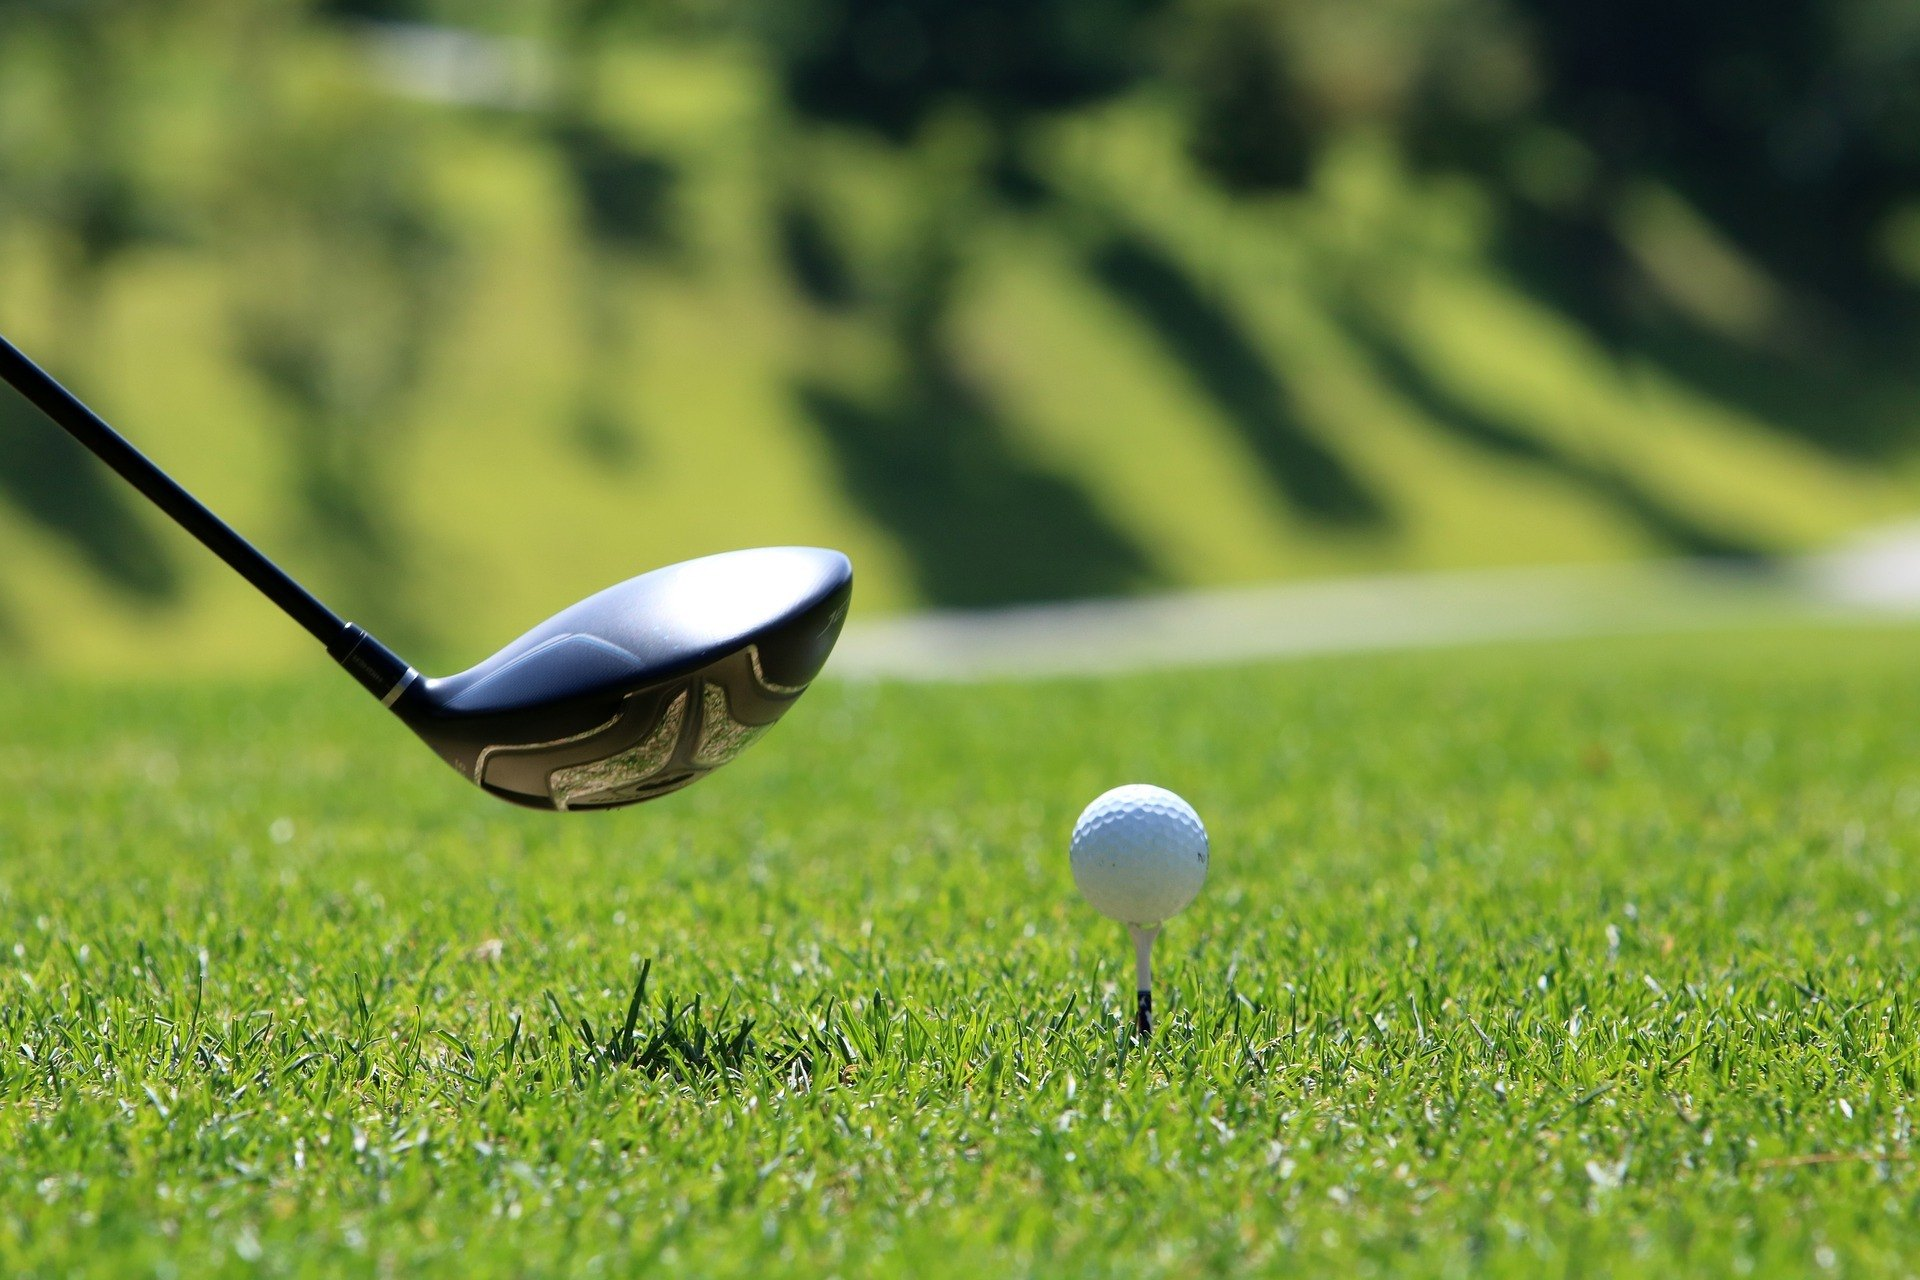 A golf club in the grass, in front of a kirkland golf ball